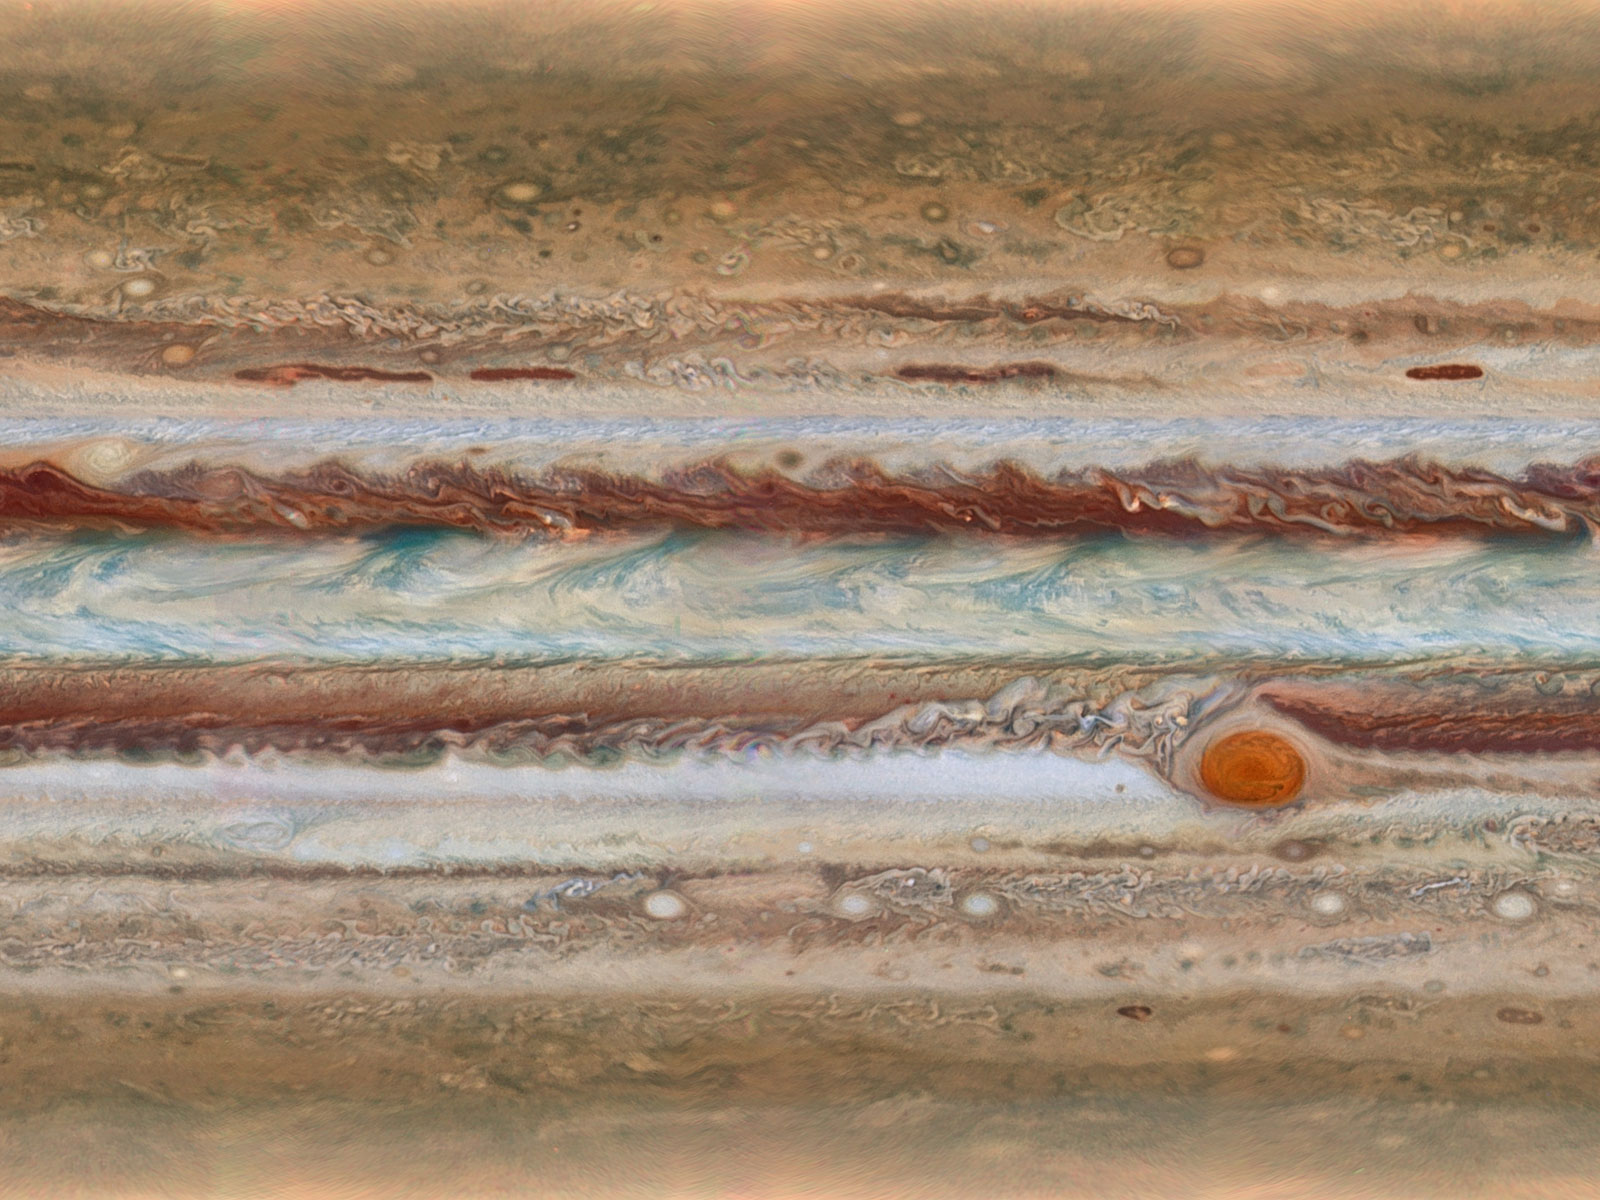 Jupiter, the Largest Planet in the Solar System | Space Wallpaper